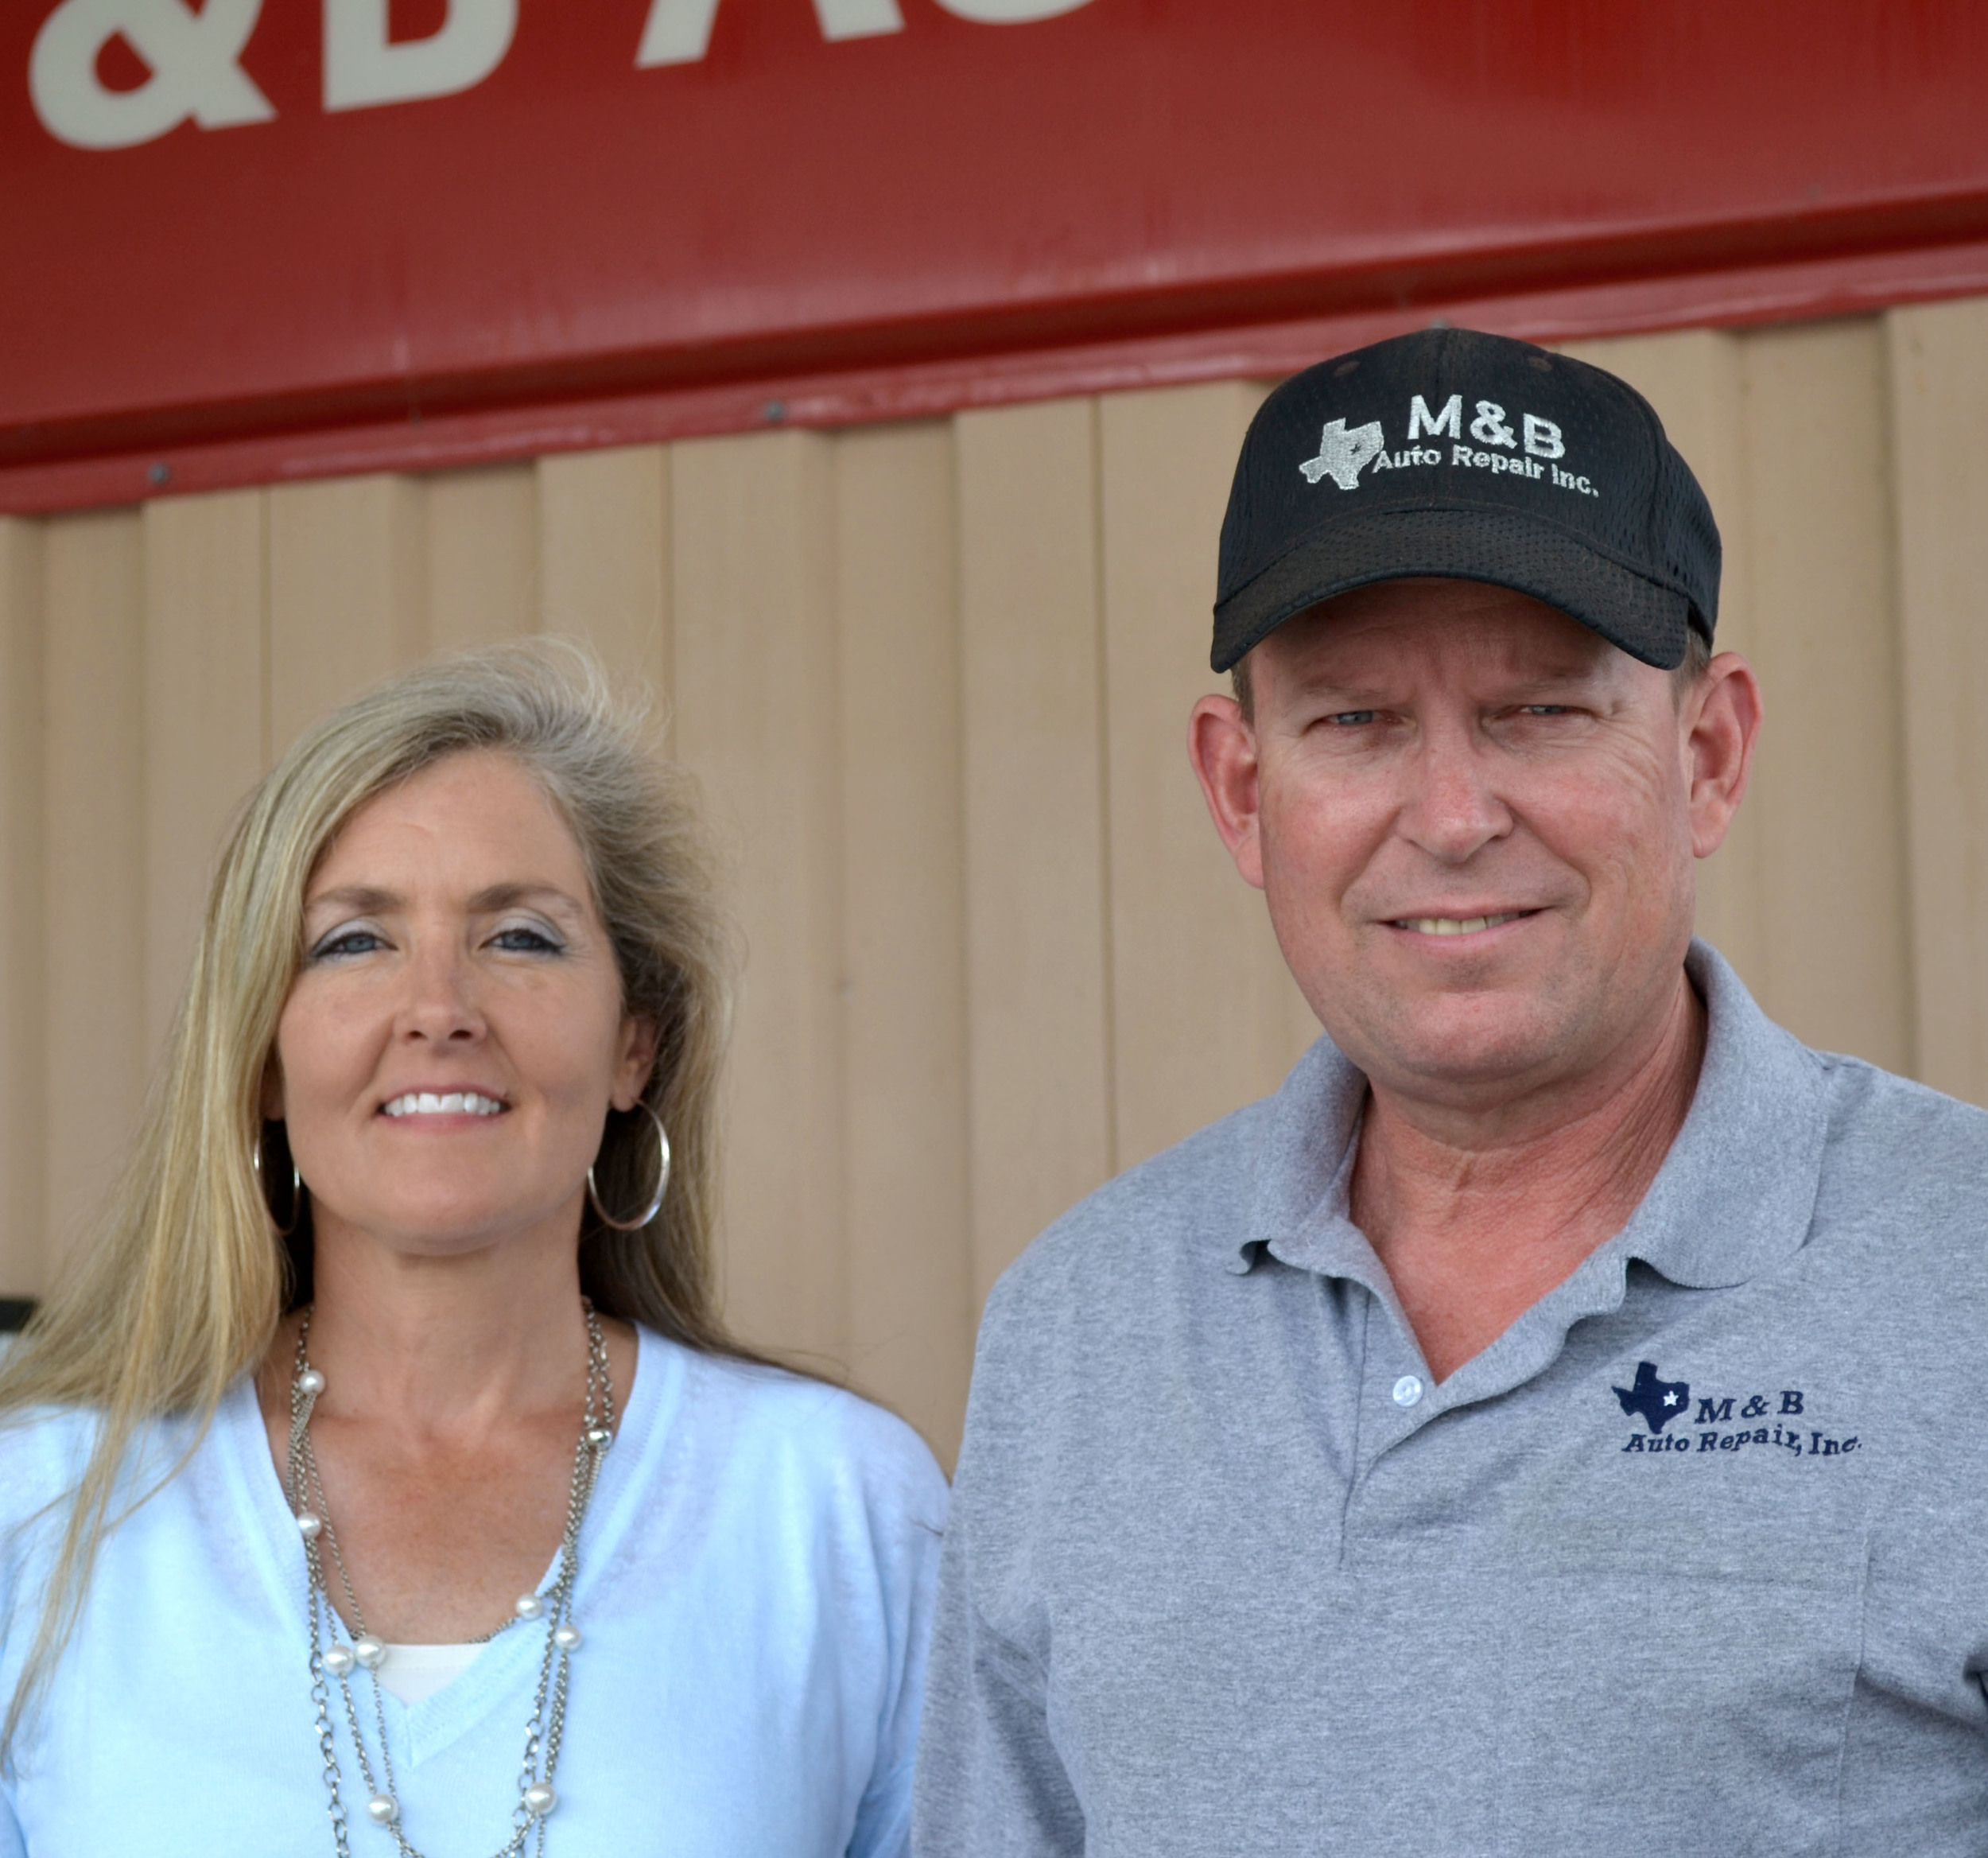 Rick & Karen Miller  Owners of M&B Auto Repair